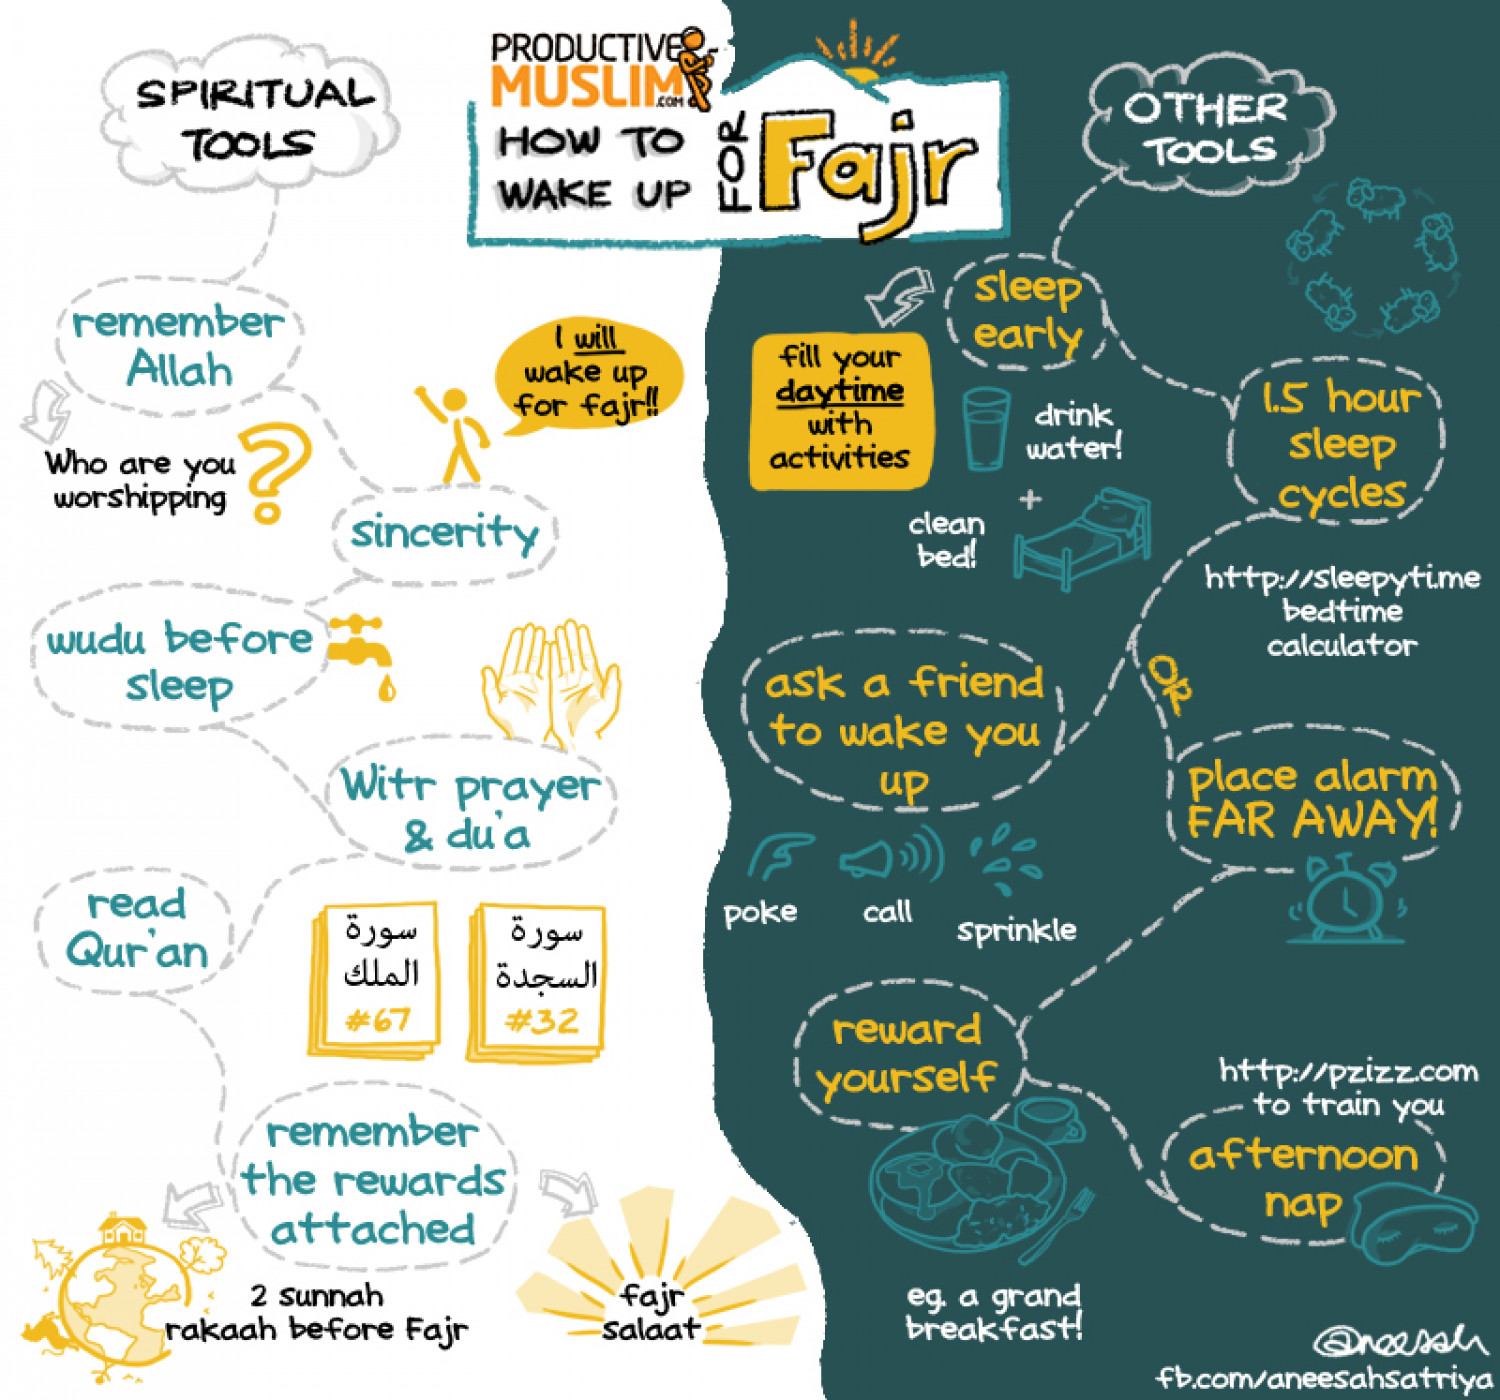 How to Wake Up for Fajr Infographic